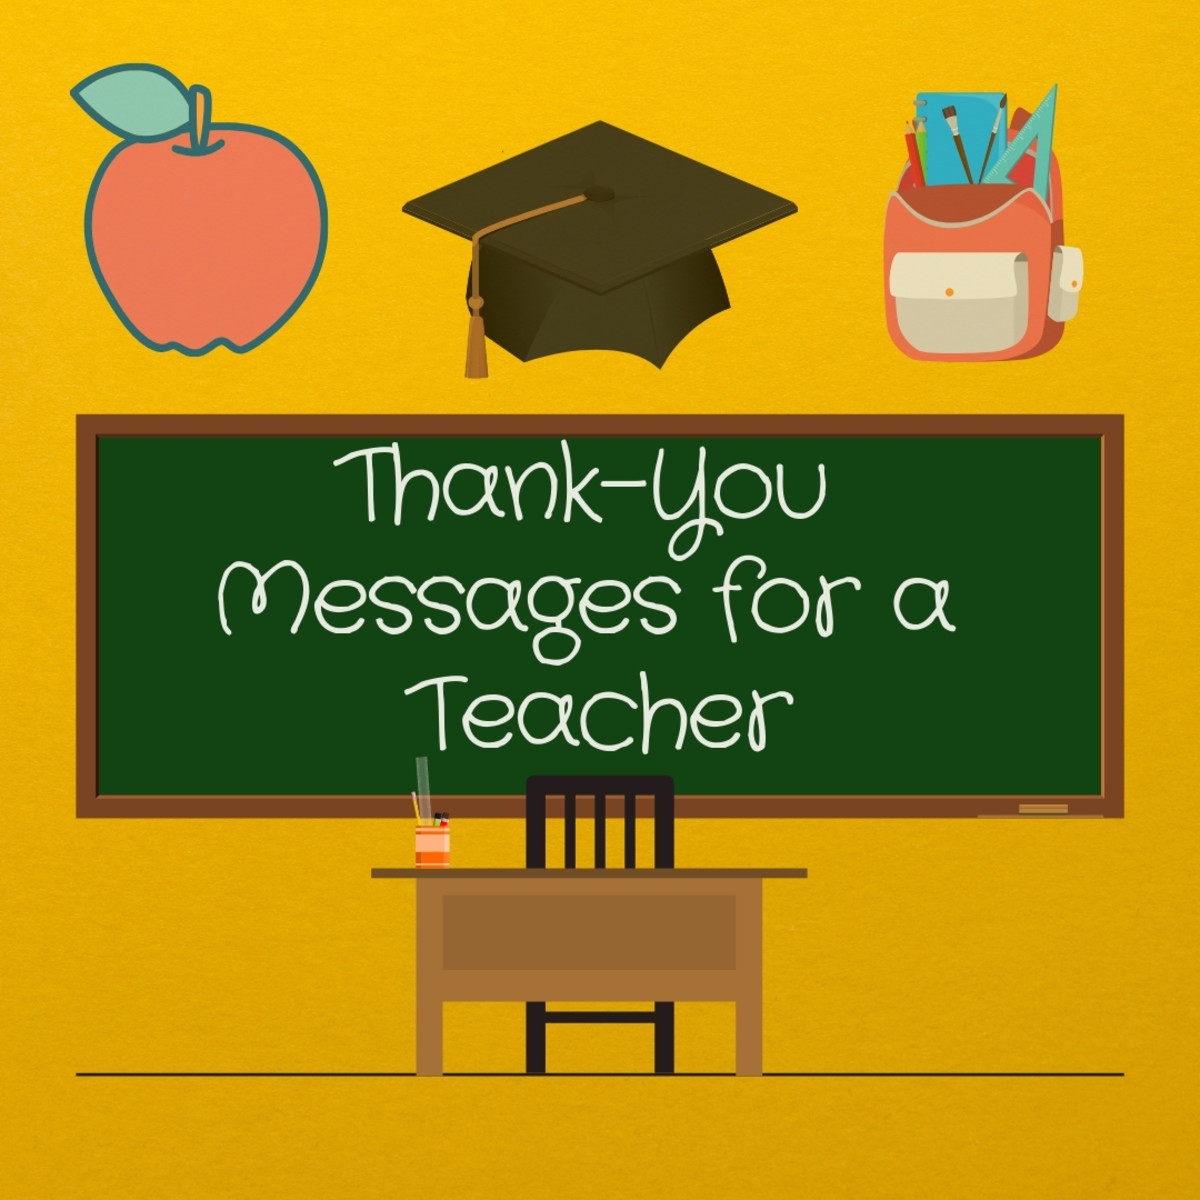 Messages to Write in a Thank-You Note or Card for Teachers